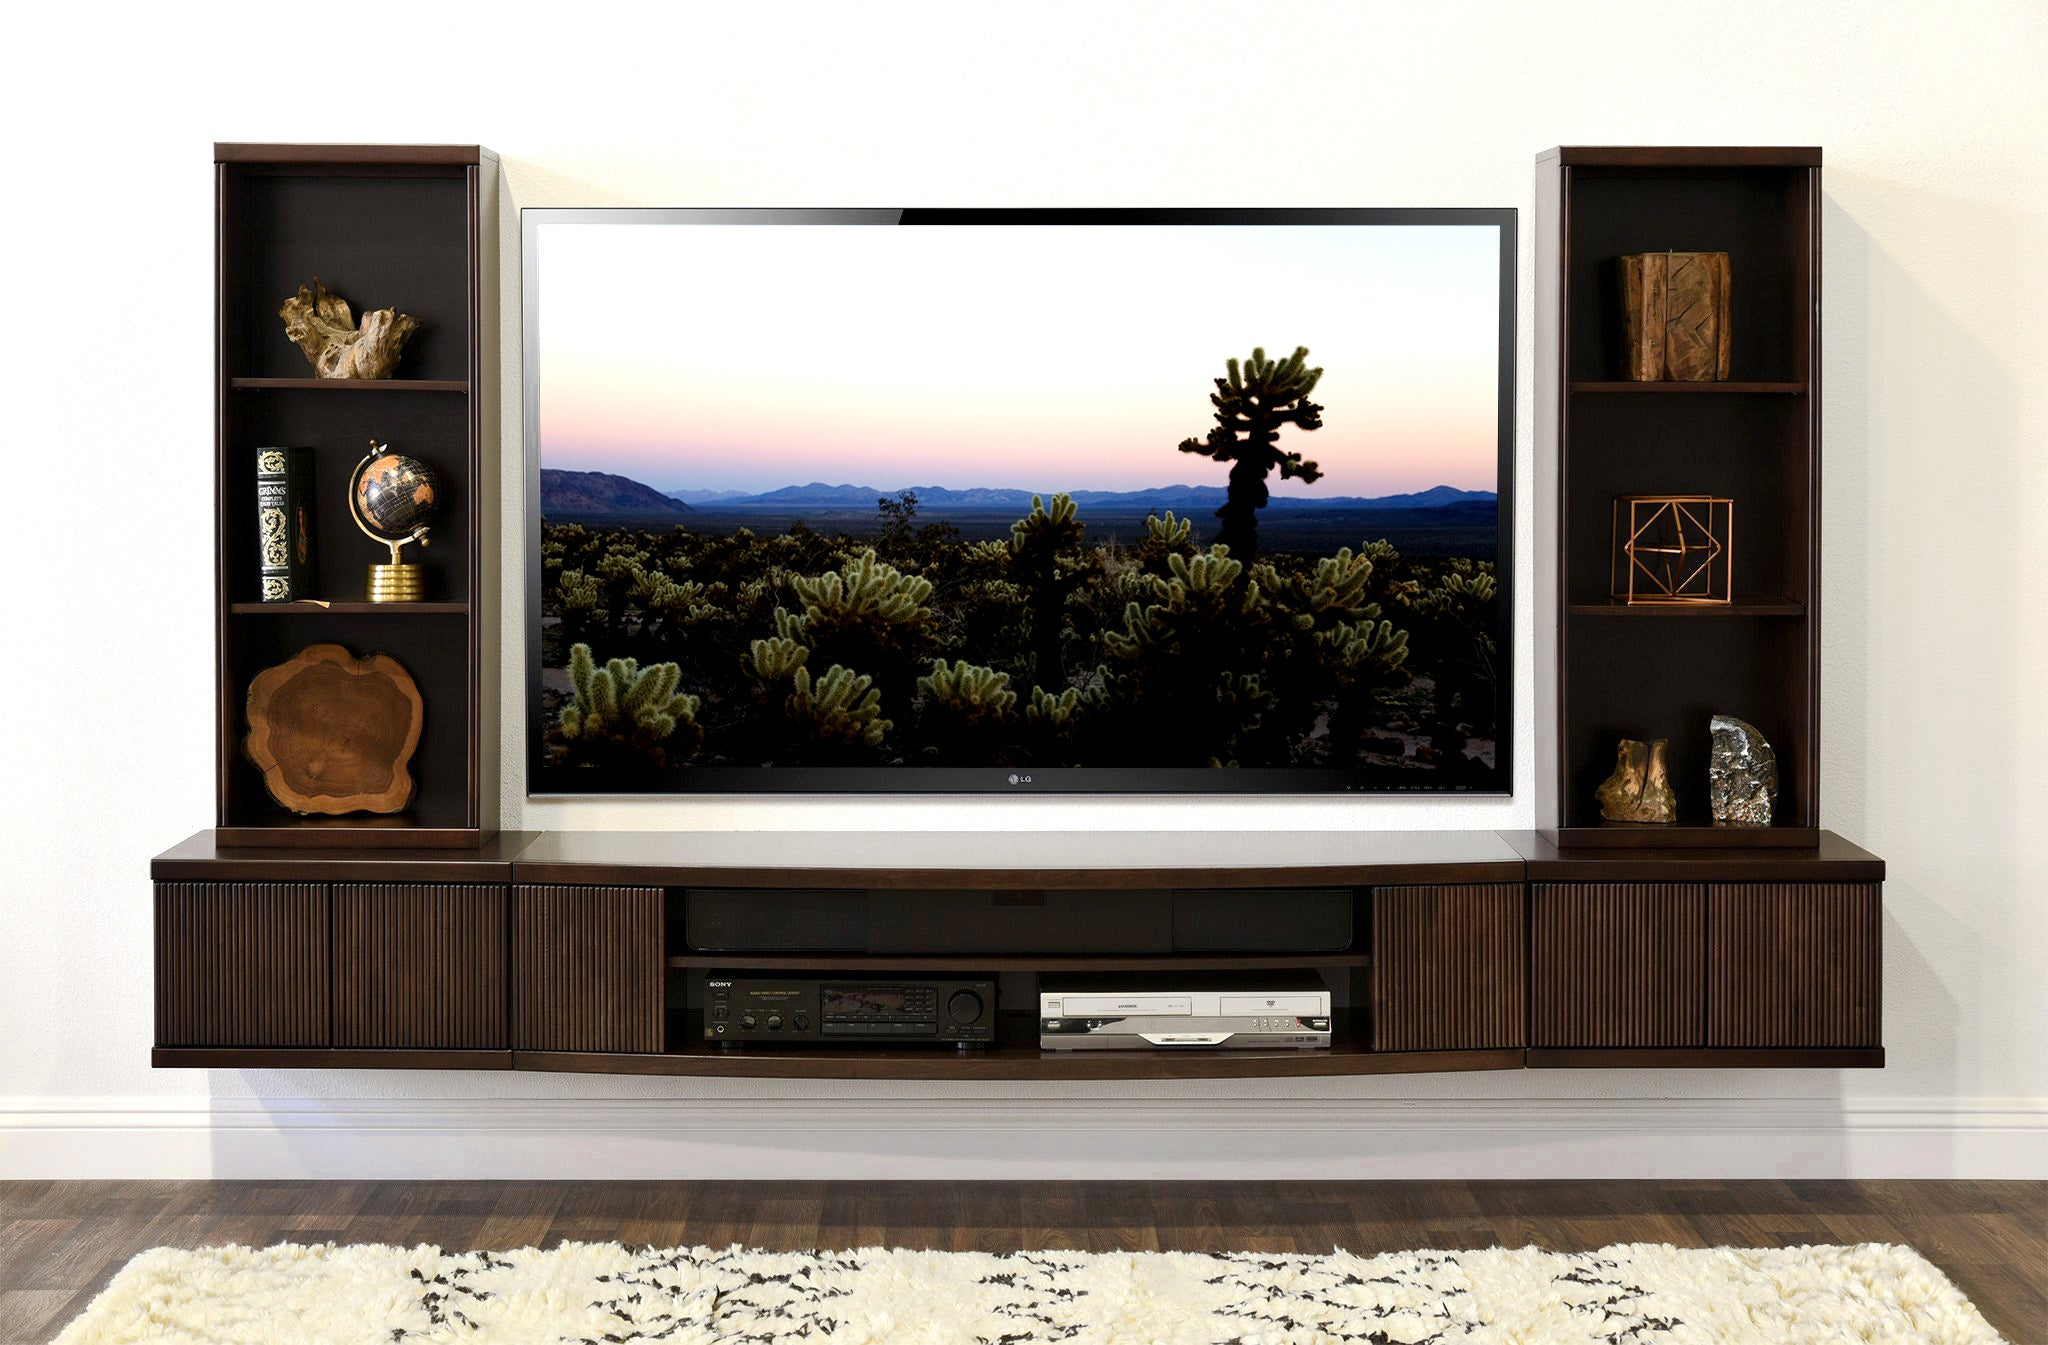 Floating Tv Stand Wall Mount Entertainment Center The Curve 5